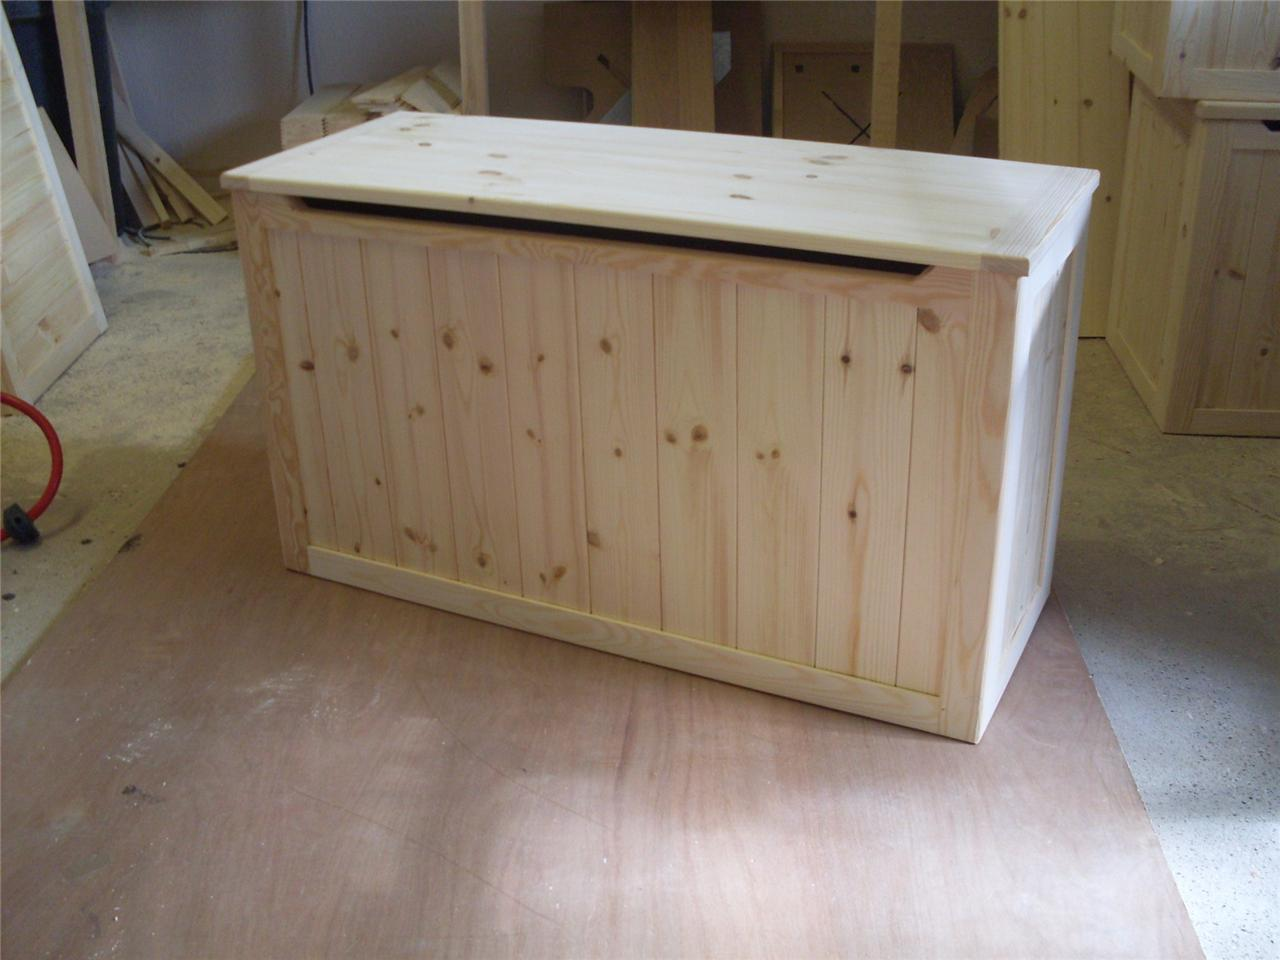 ... Crafted Pine Wooden Toy Box Blanket Box Chest Seat Box Decor | decodir